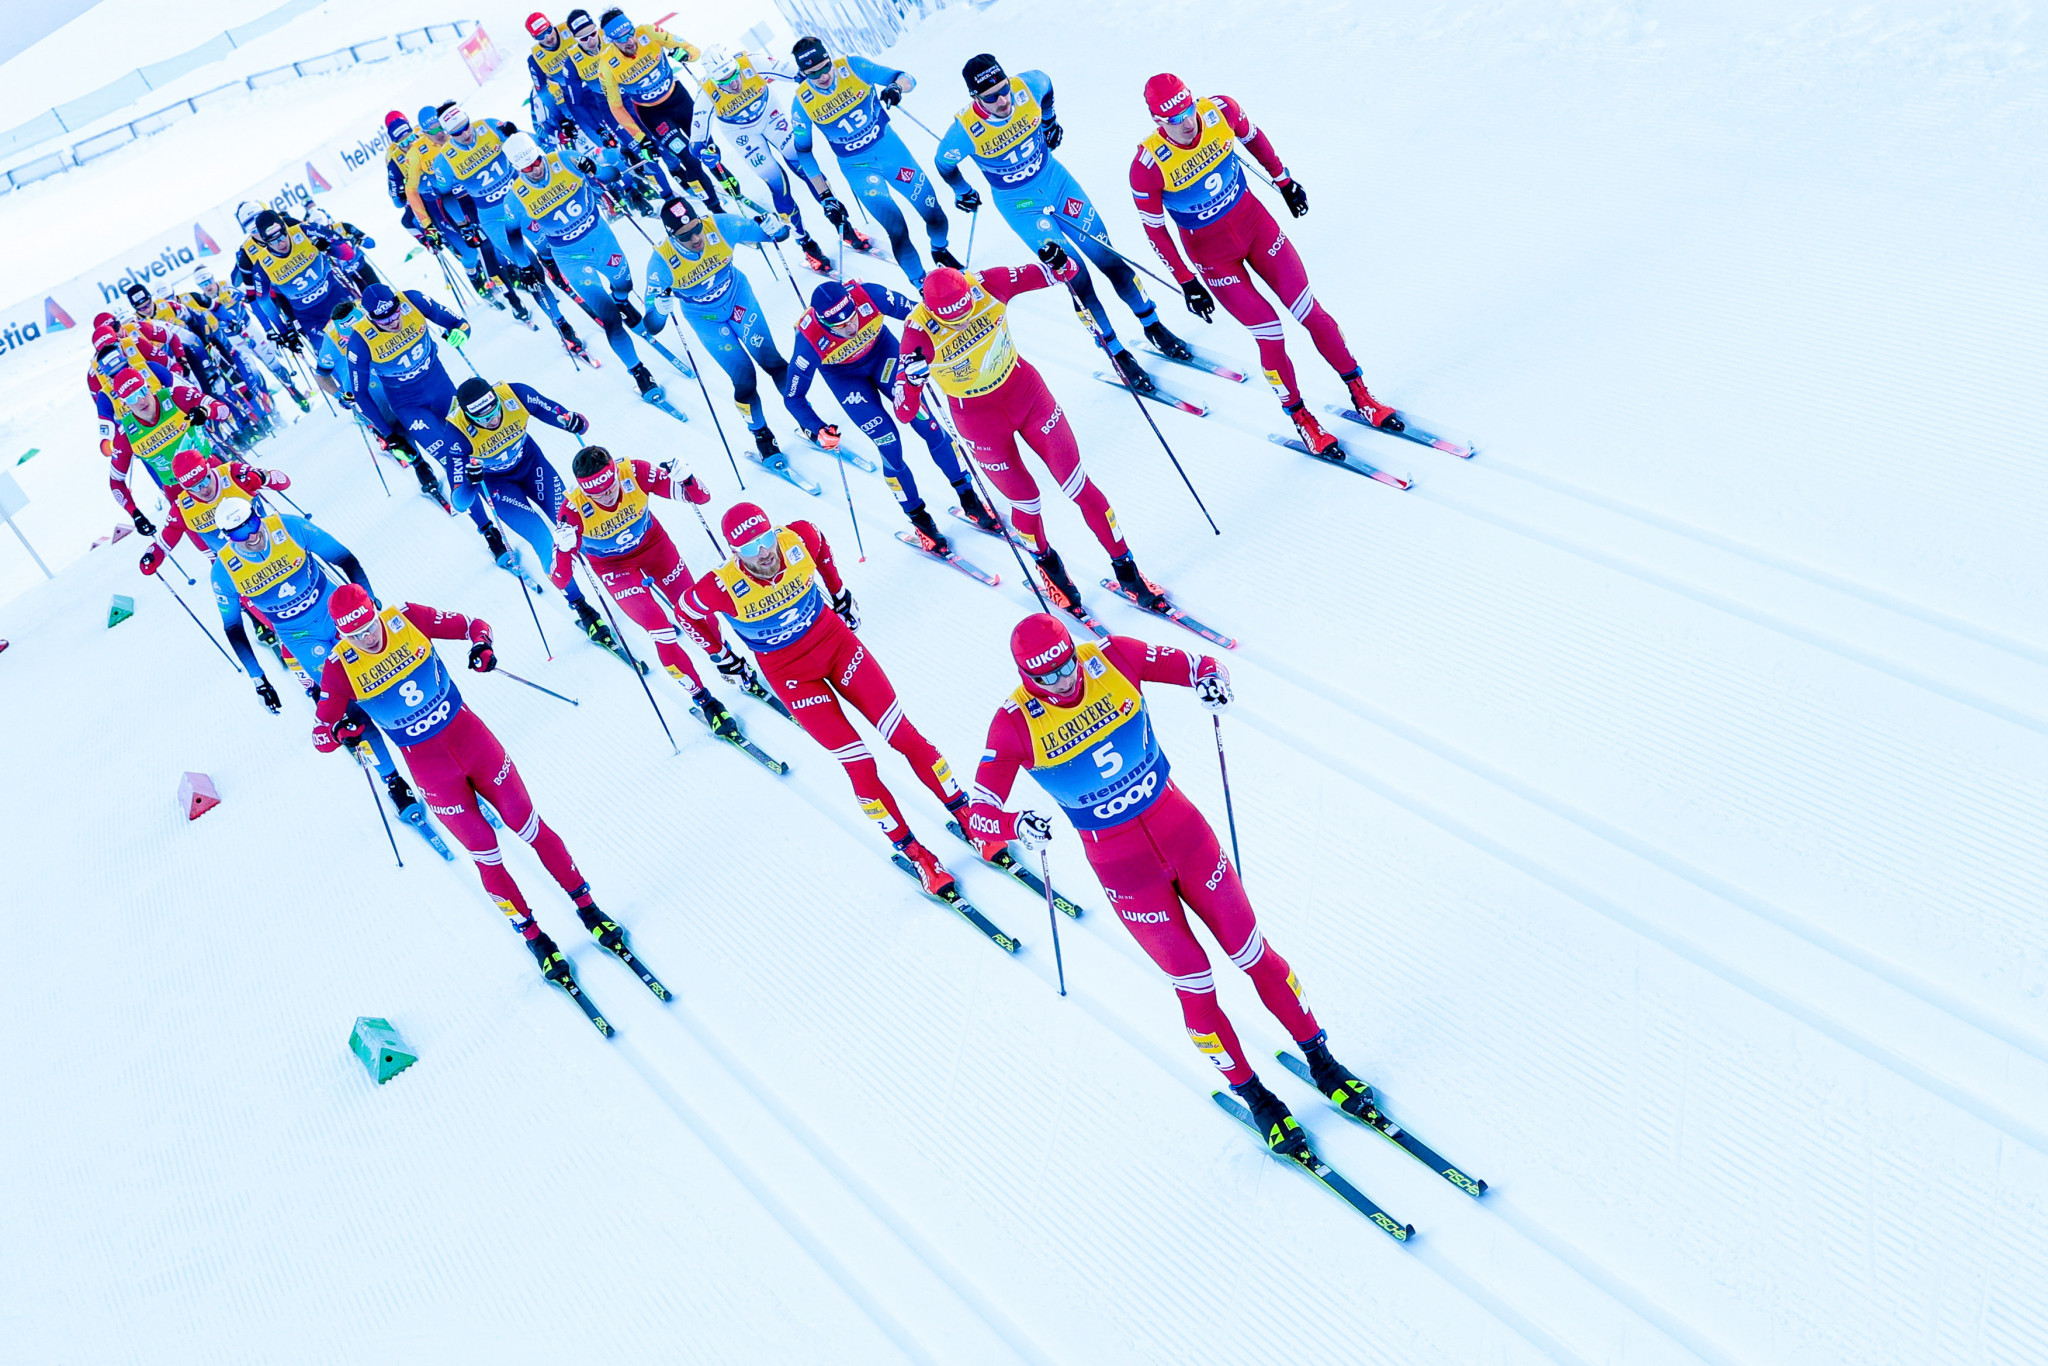 Discussions are taking place over whether the Nové Město World Cup races can be moved to March ©Getty Images